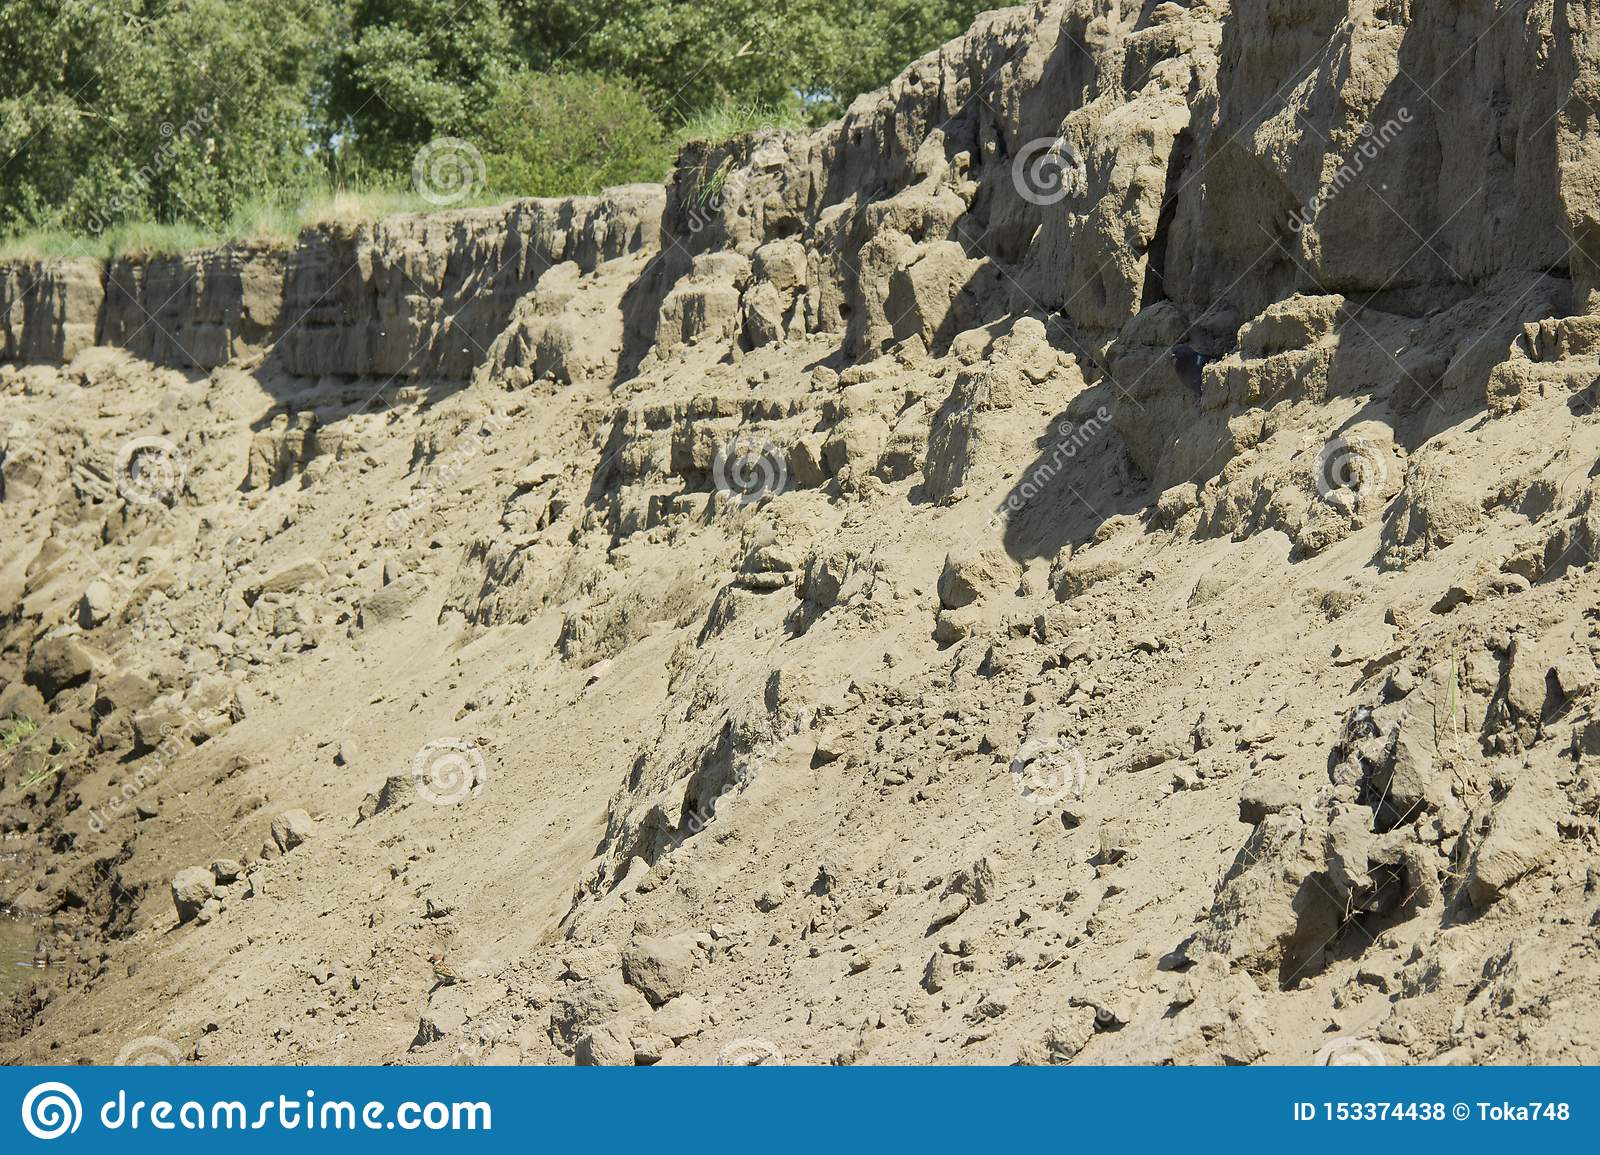 Scree of sand sand dunes, mountains, sand avalanche, texture, soil erosion, weathering